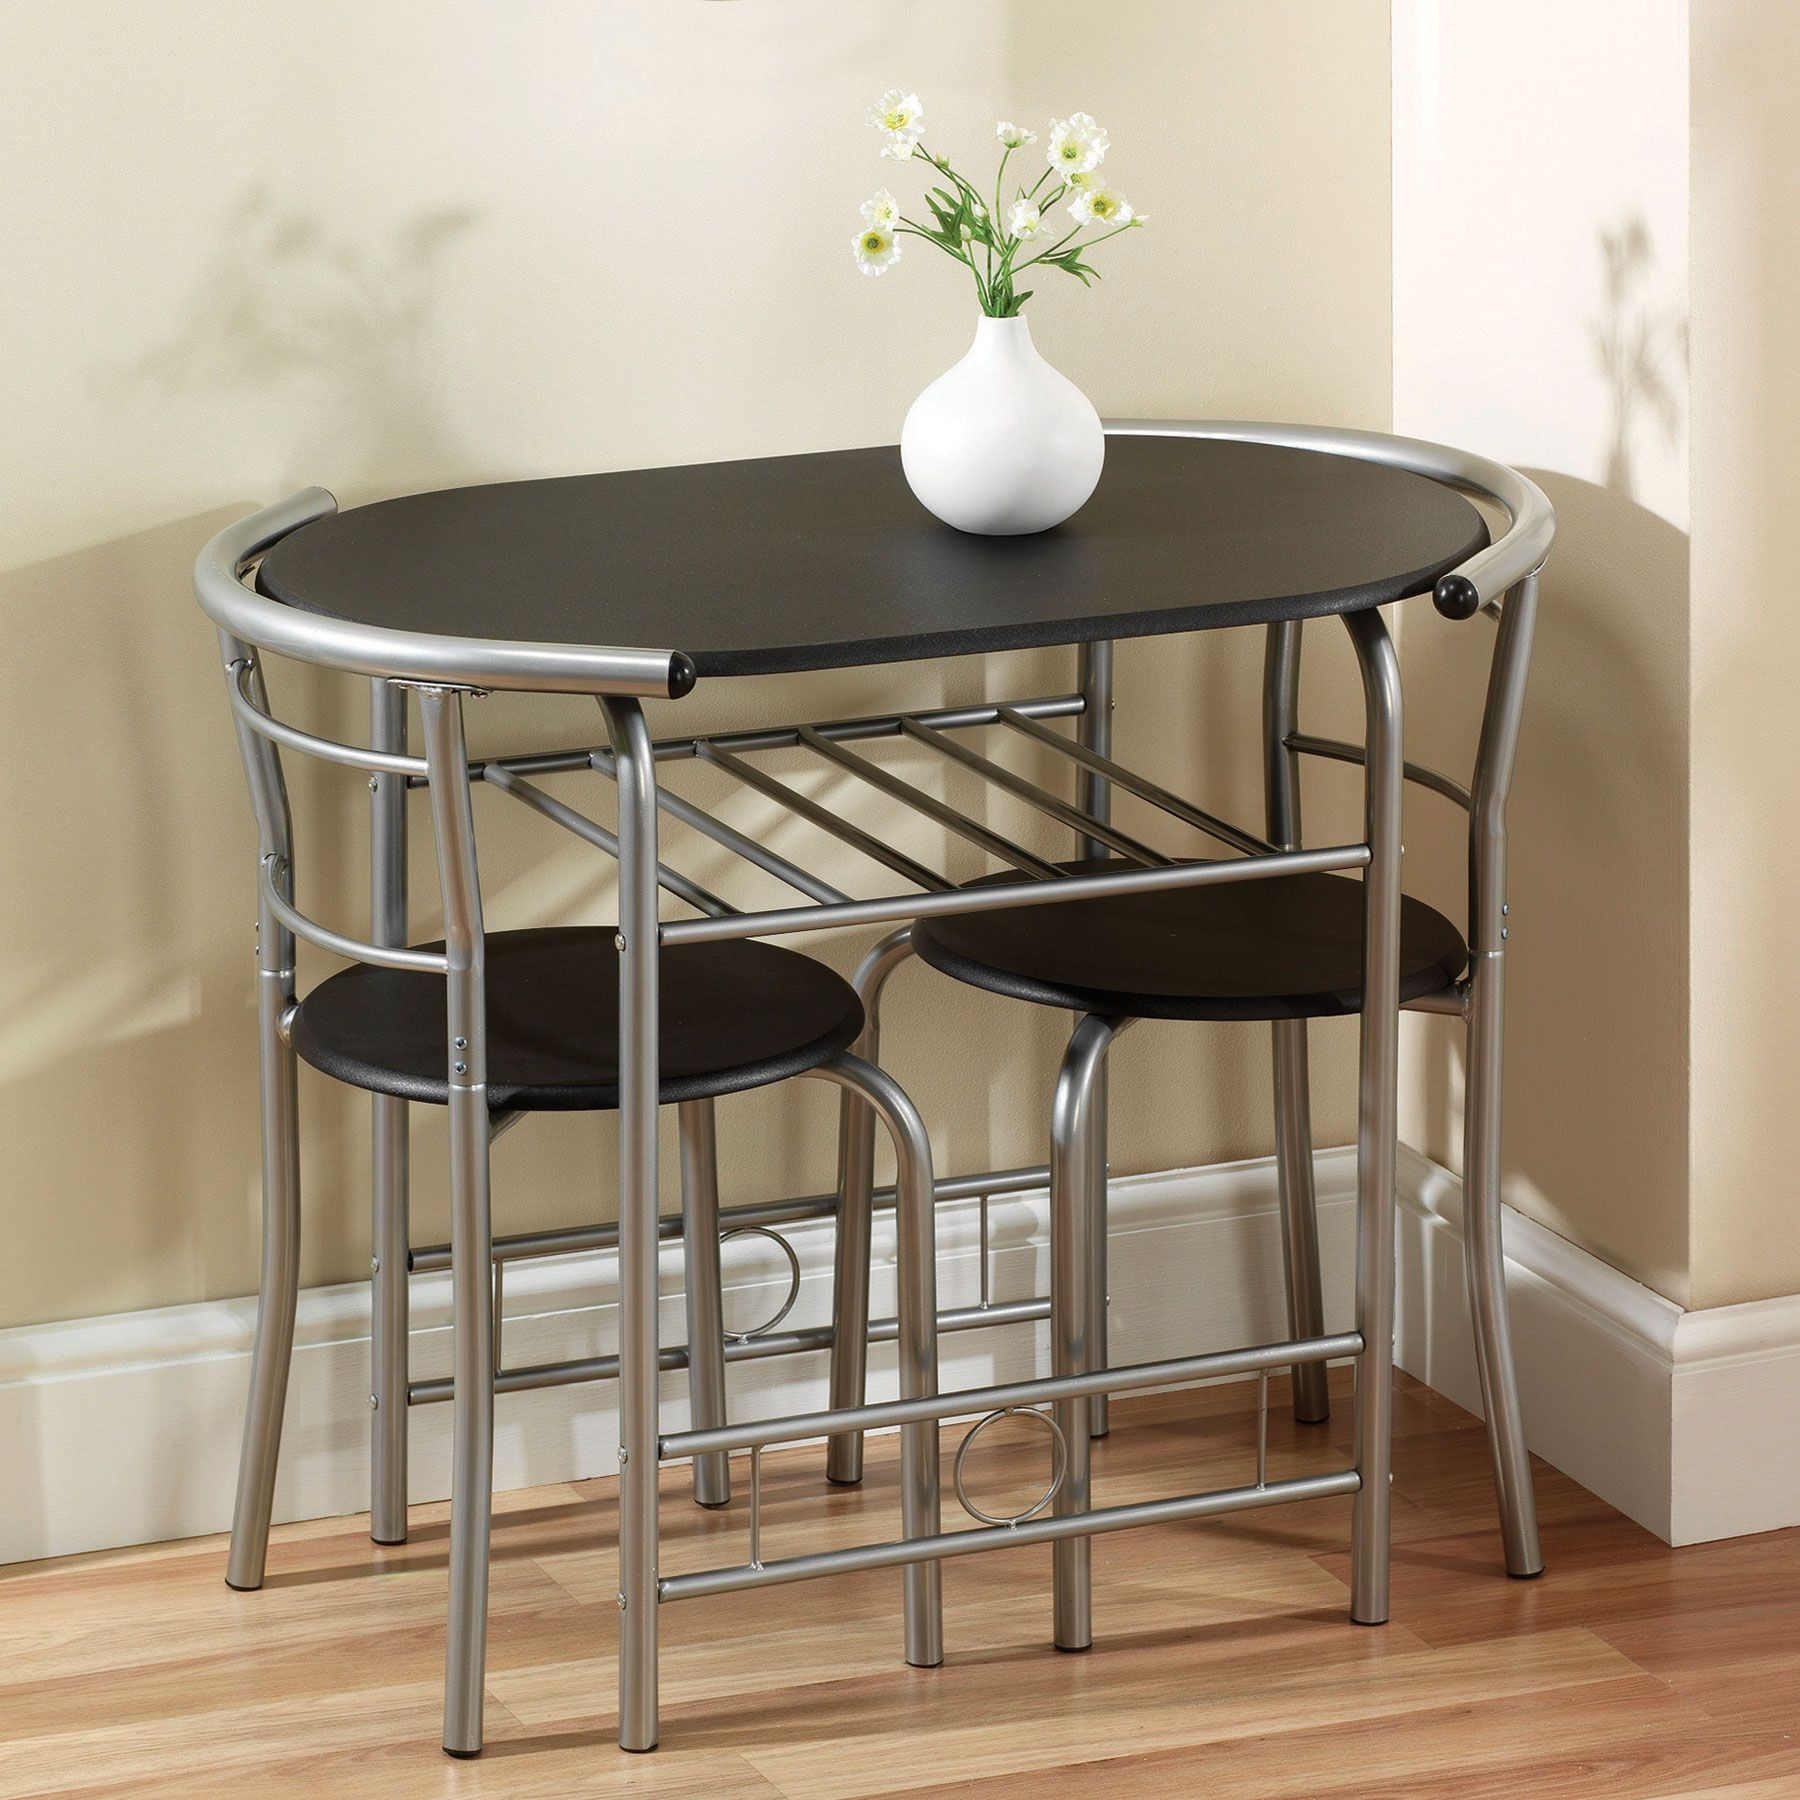 Remarakbale stainless steel space saving dining table and chairs set